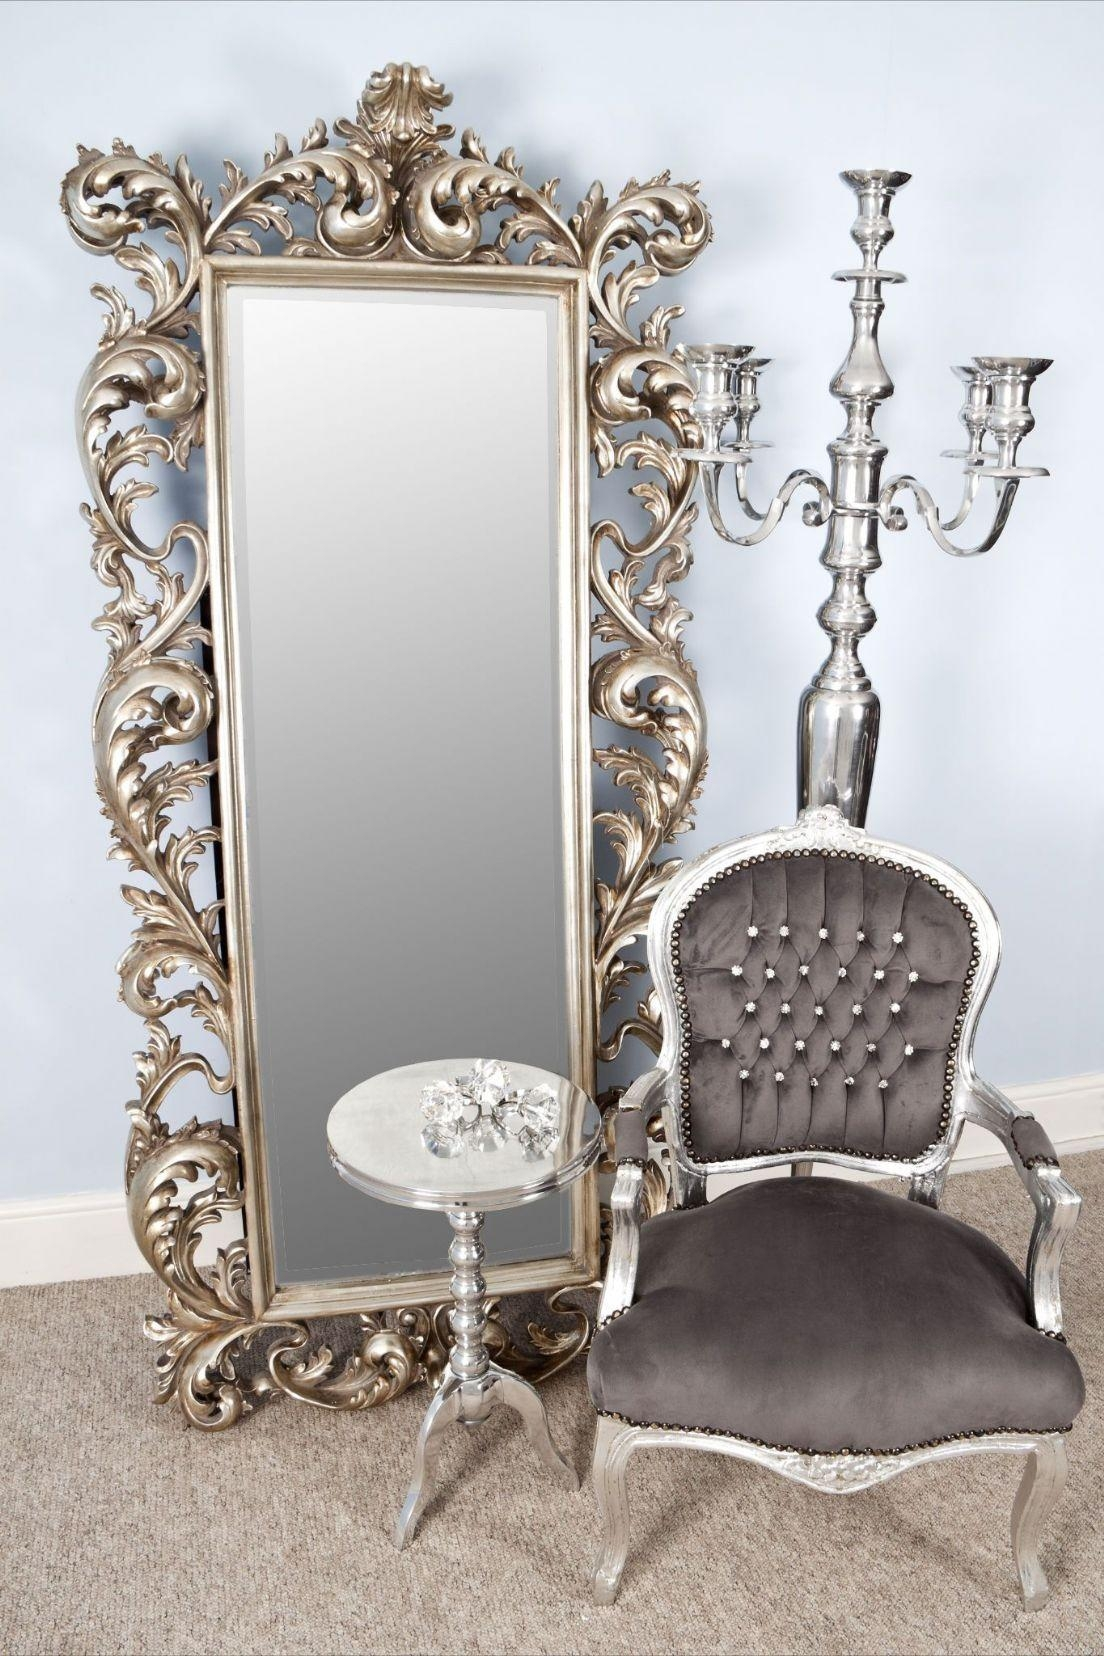 Bedroom Furniture Sets : Framed Mirrors Gold Mirror Mirror Framed Throughout Full Length Vintage Mirror (View 19 of 20)